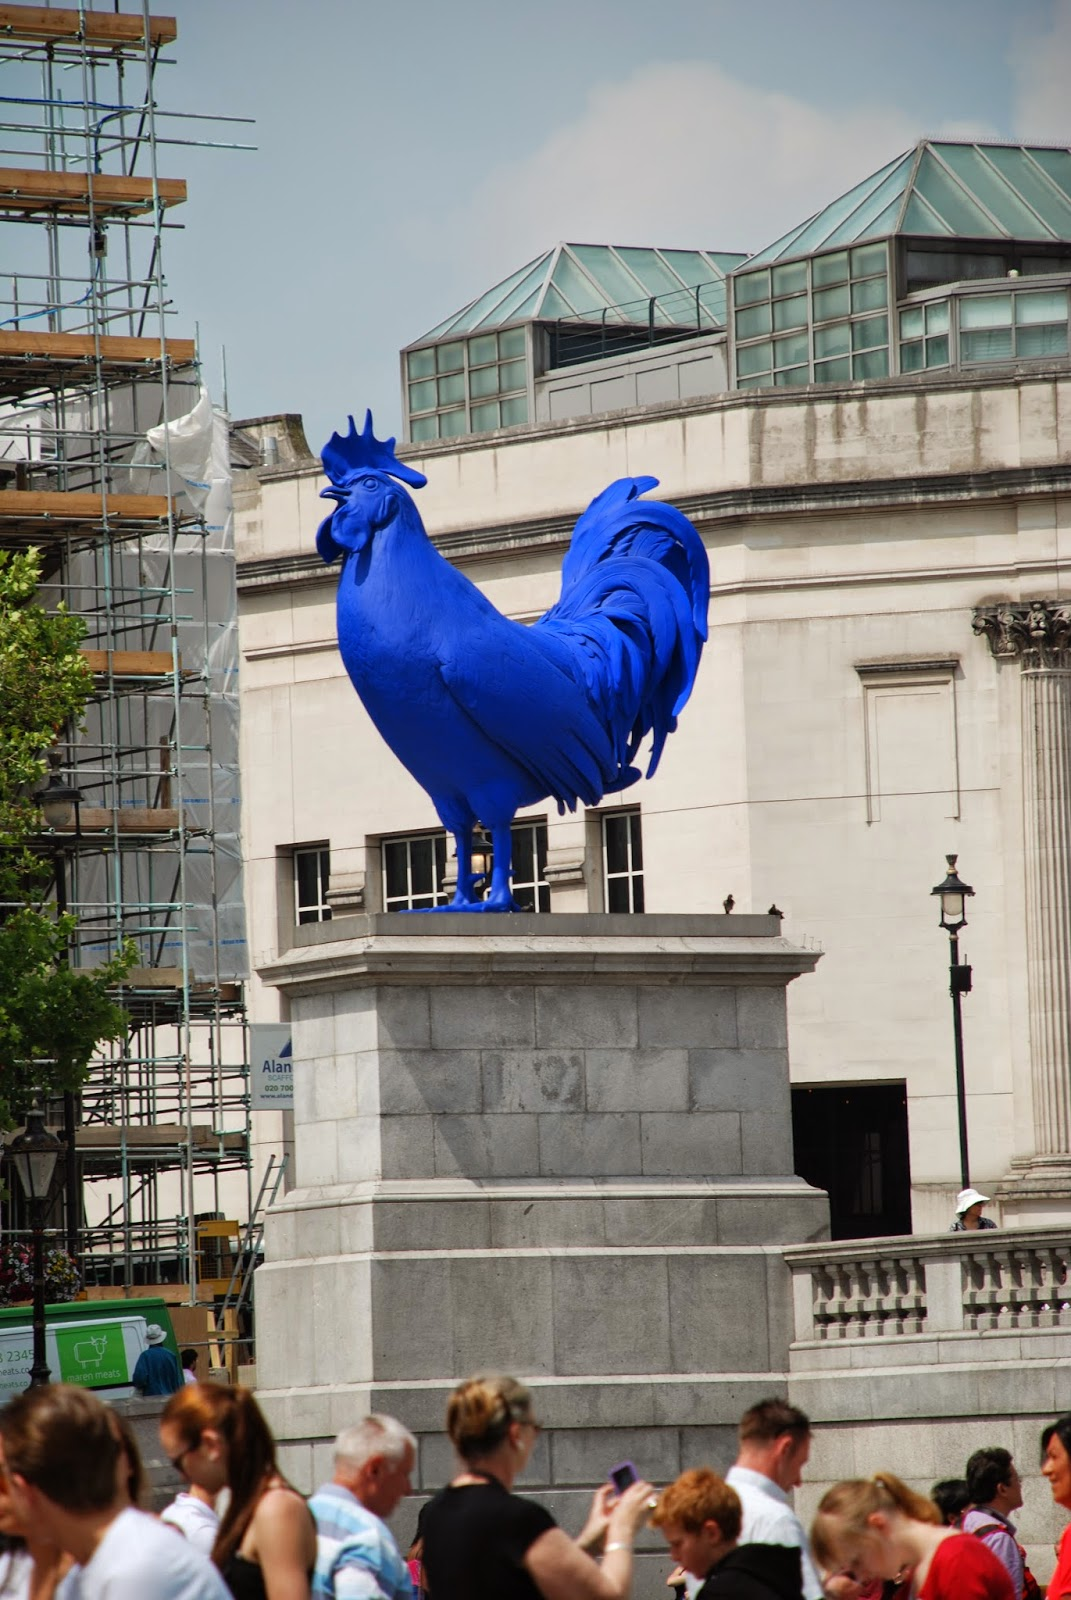 Fourth Plinth, Trafalgar Square